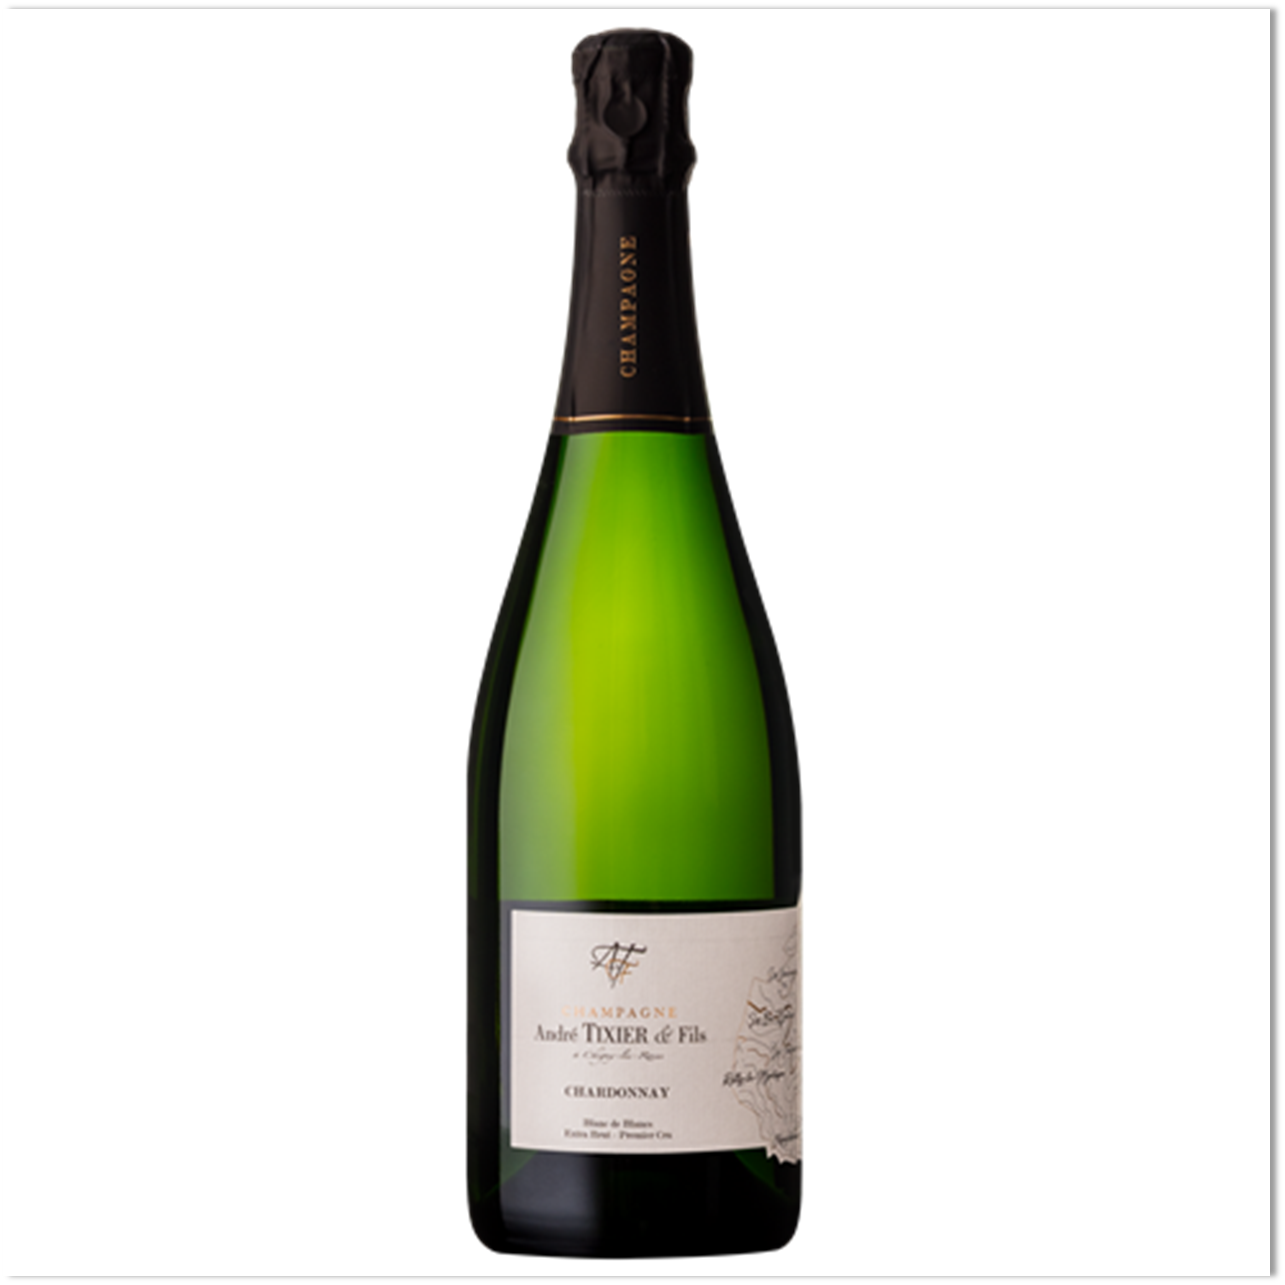 CHAMPAGNE ANDRÉ TIXIER & FILS Chardonnay